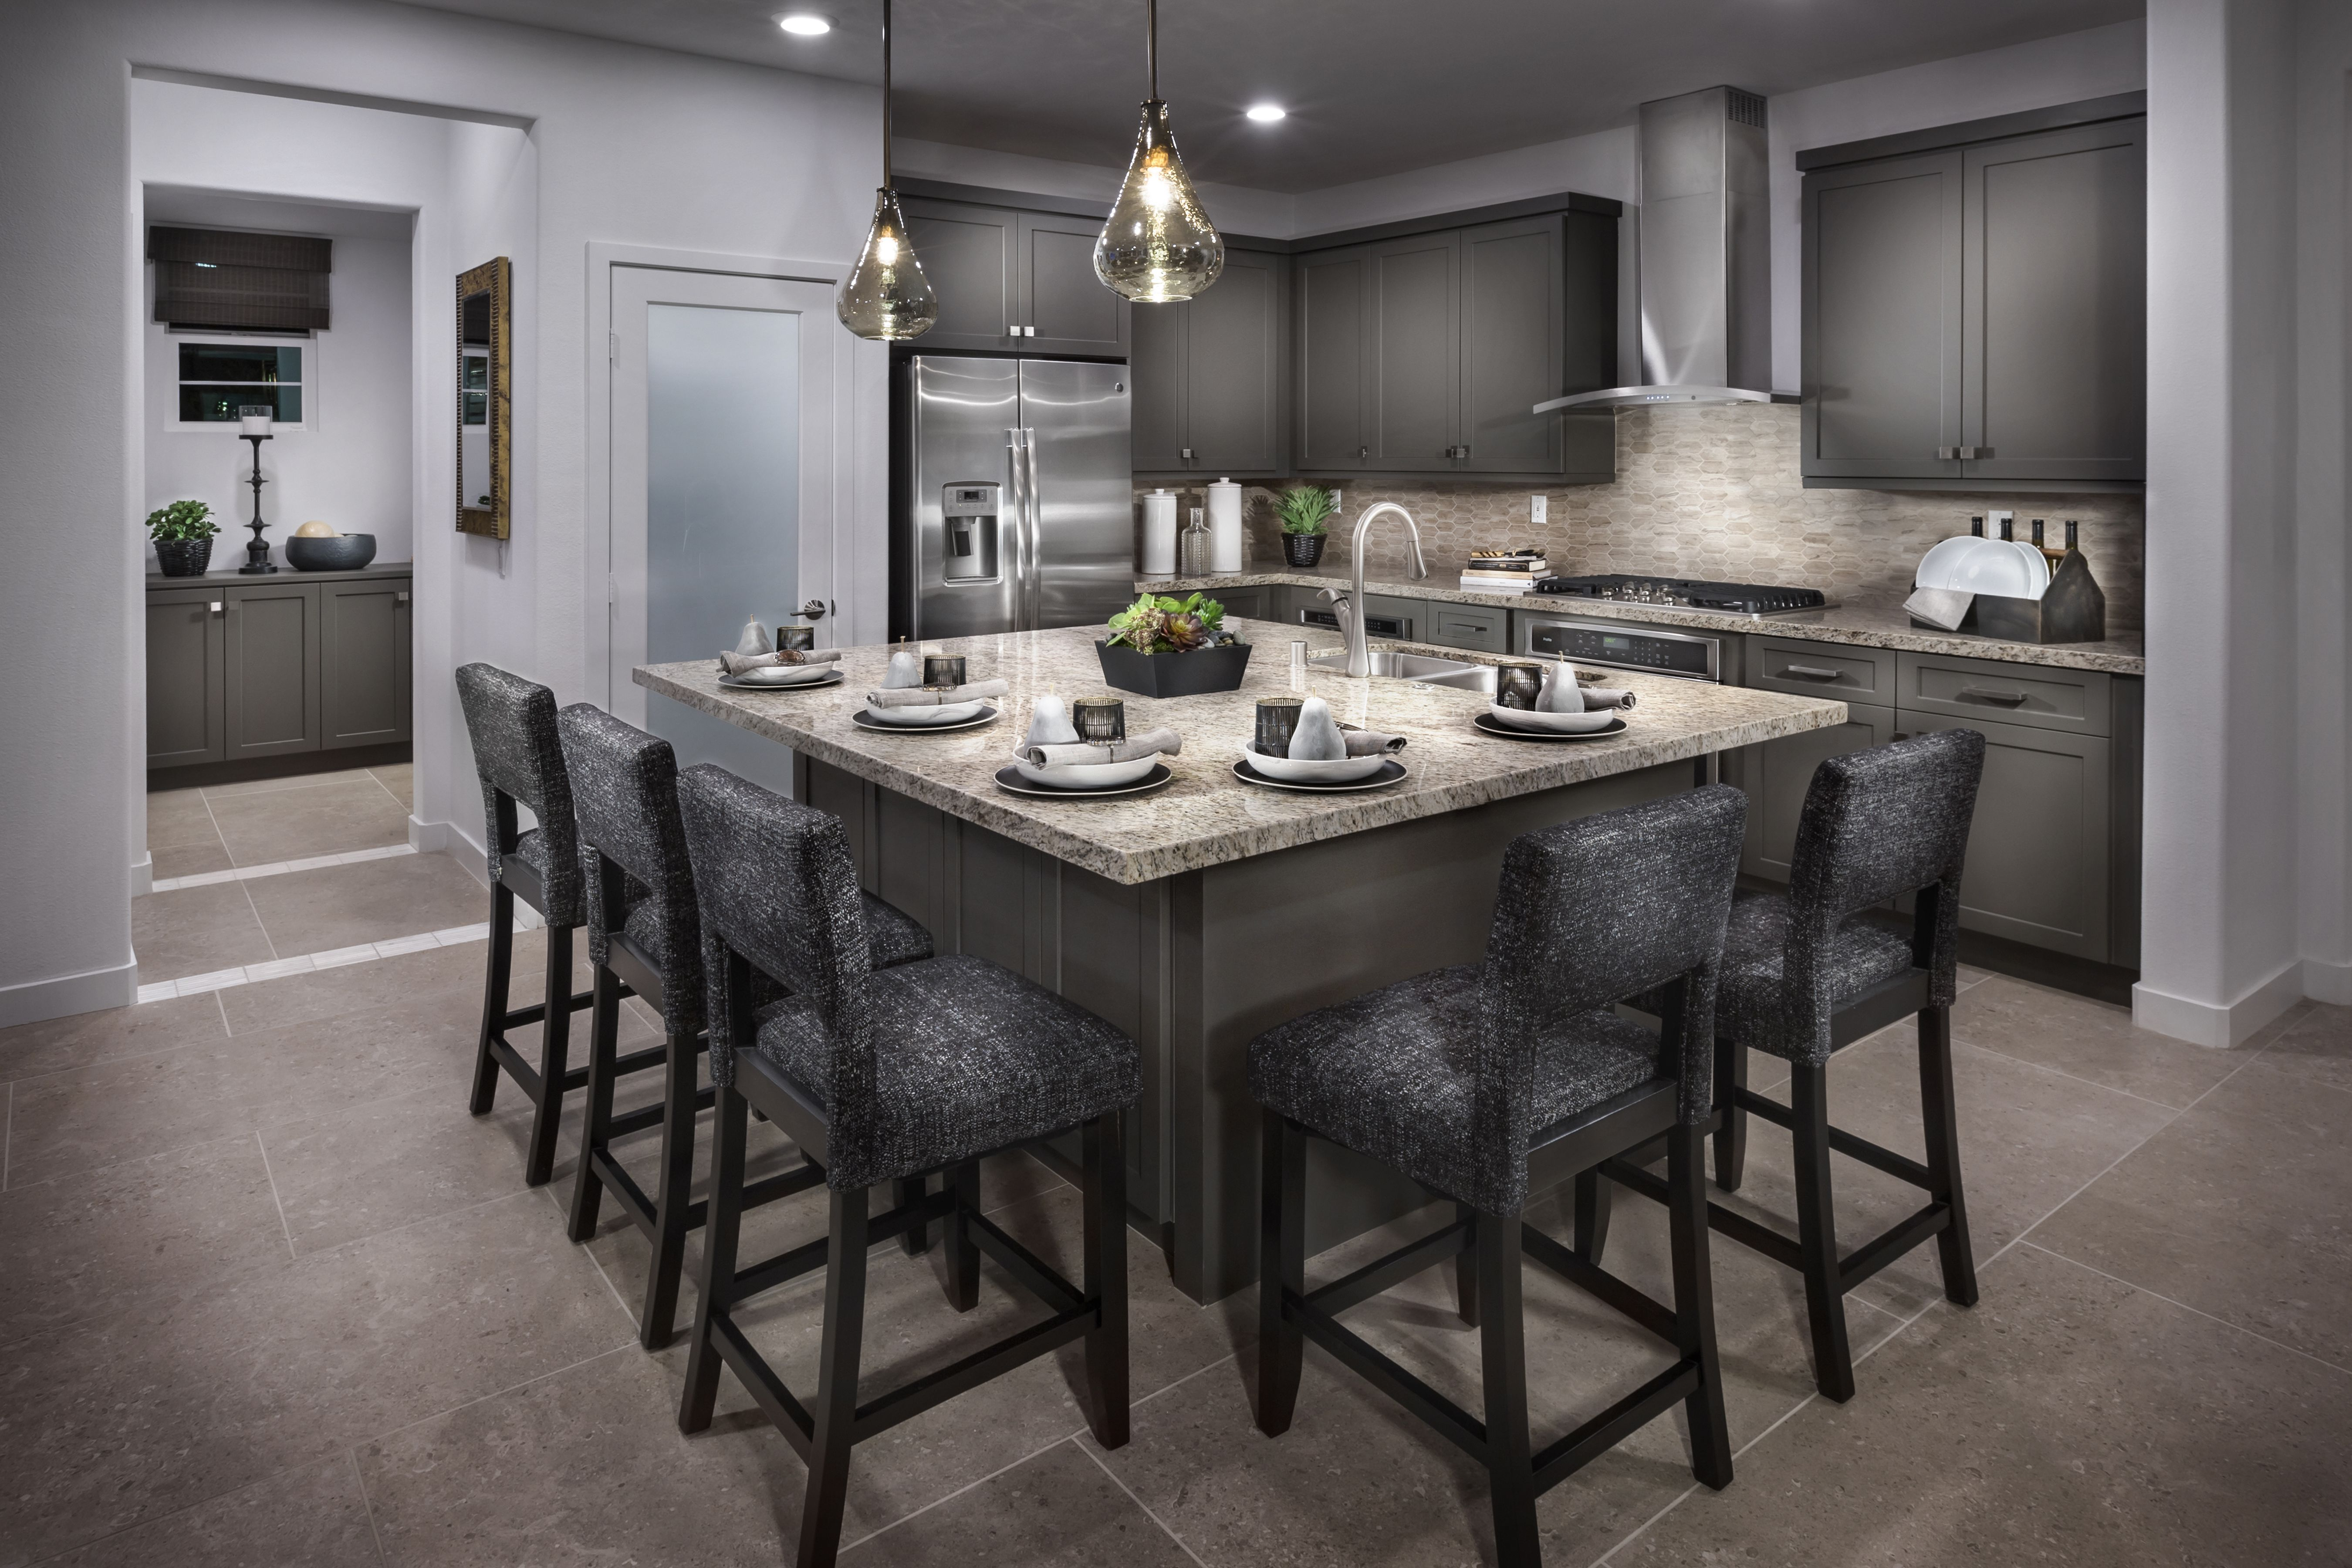 Take A Look Would You Like To Cook In This Kitchen Kitchen Ideas New House Home Kitchens Kitchen Design